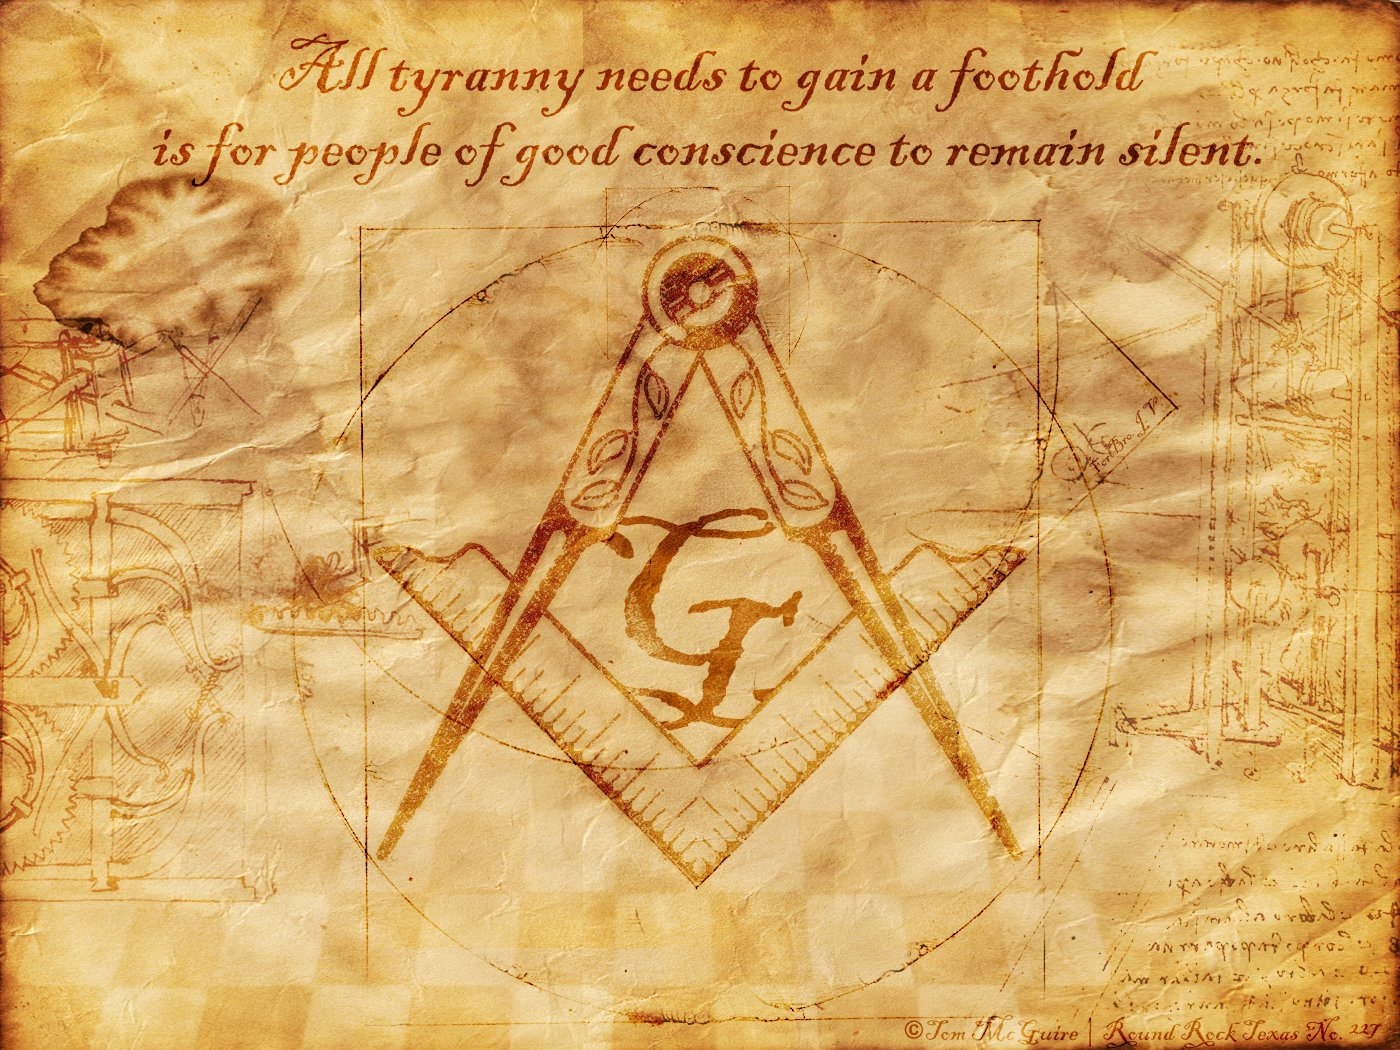 91750075-da_vinci_masonic-wallpaper-standard-quote